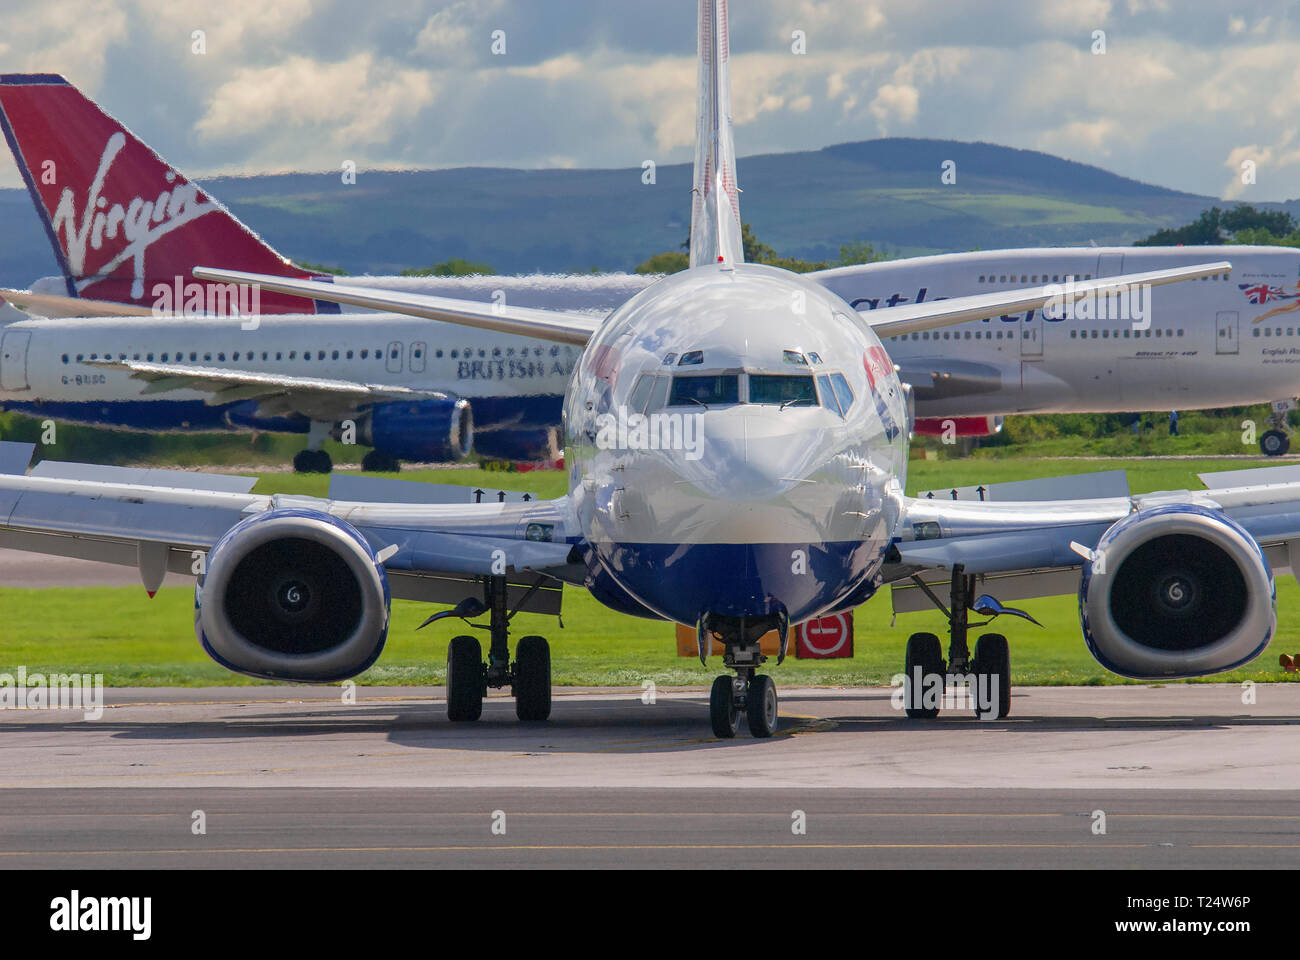 A British Airways Boeing 737 taxis at Manchester Airport. Busy airport scen with three planes in one picture. - Stock Image